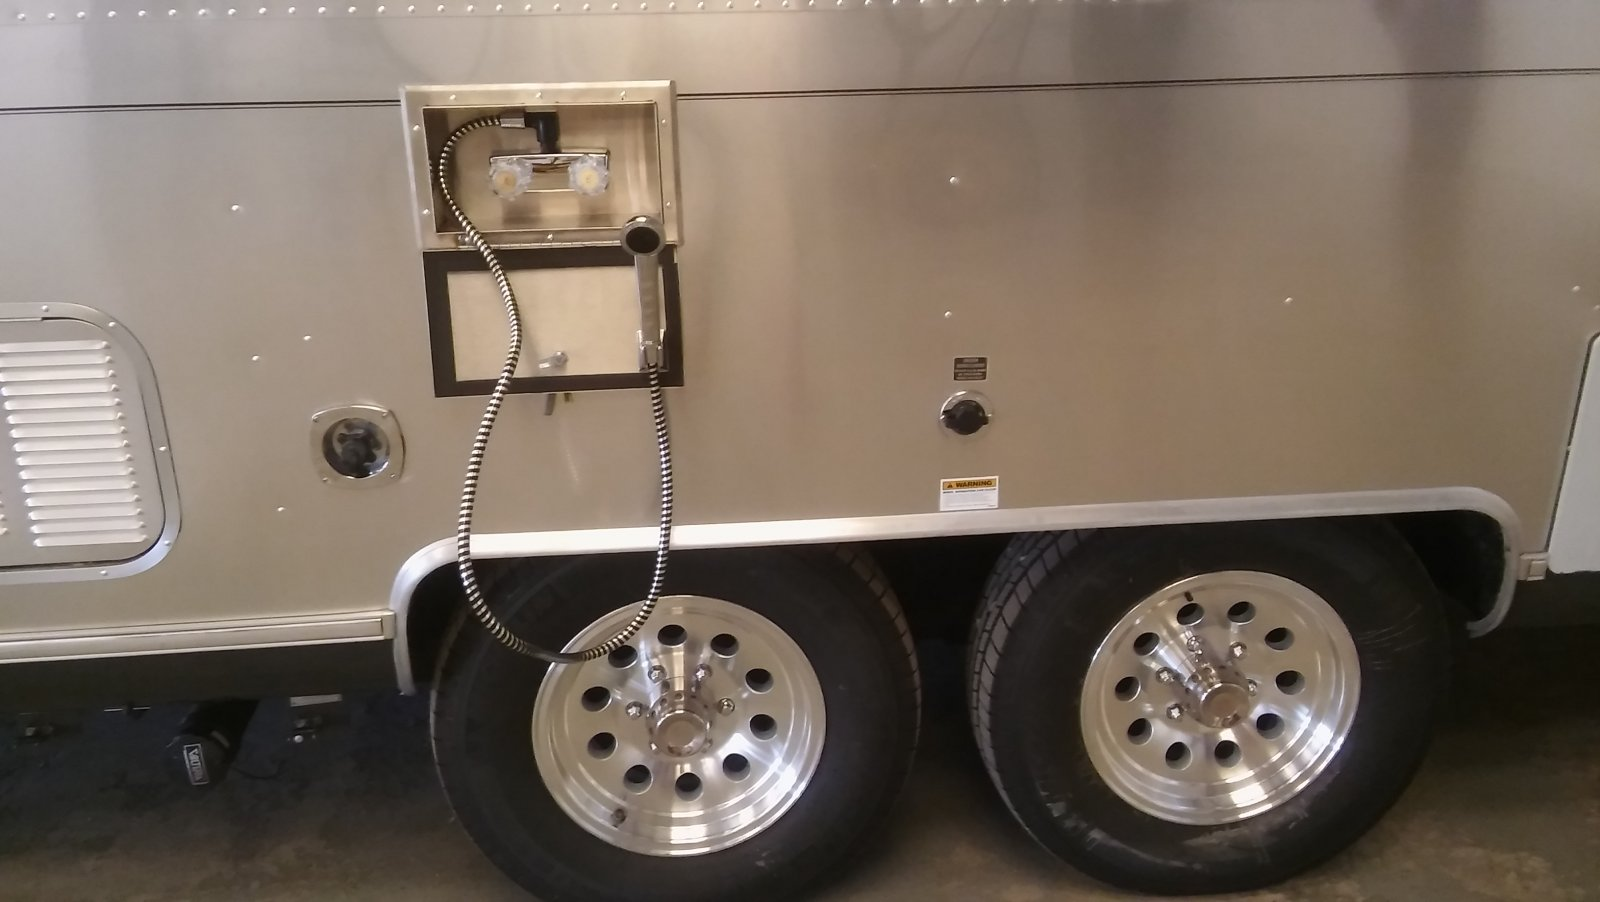 Click image for larger version  Name:Airstream outdoor shower new tires and wheels.jpg Views:354 Size:131.2 KB ID:264201